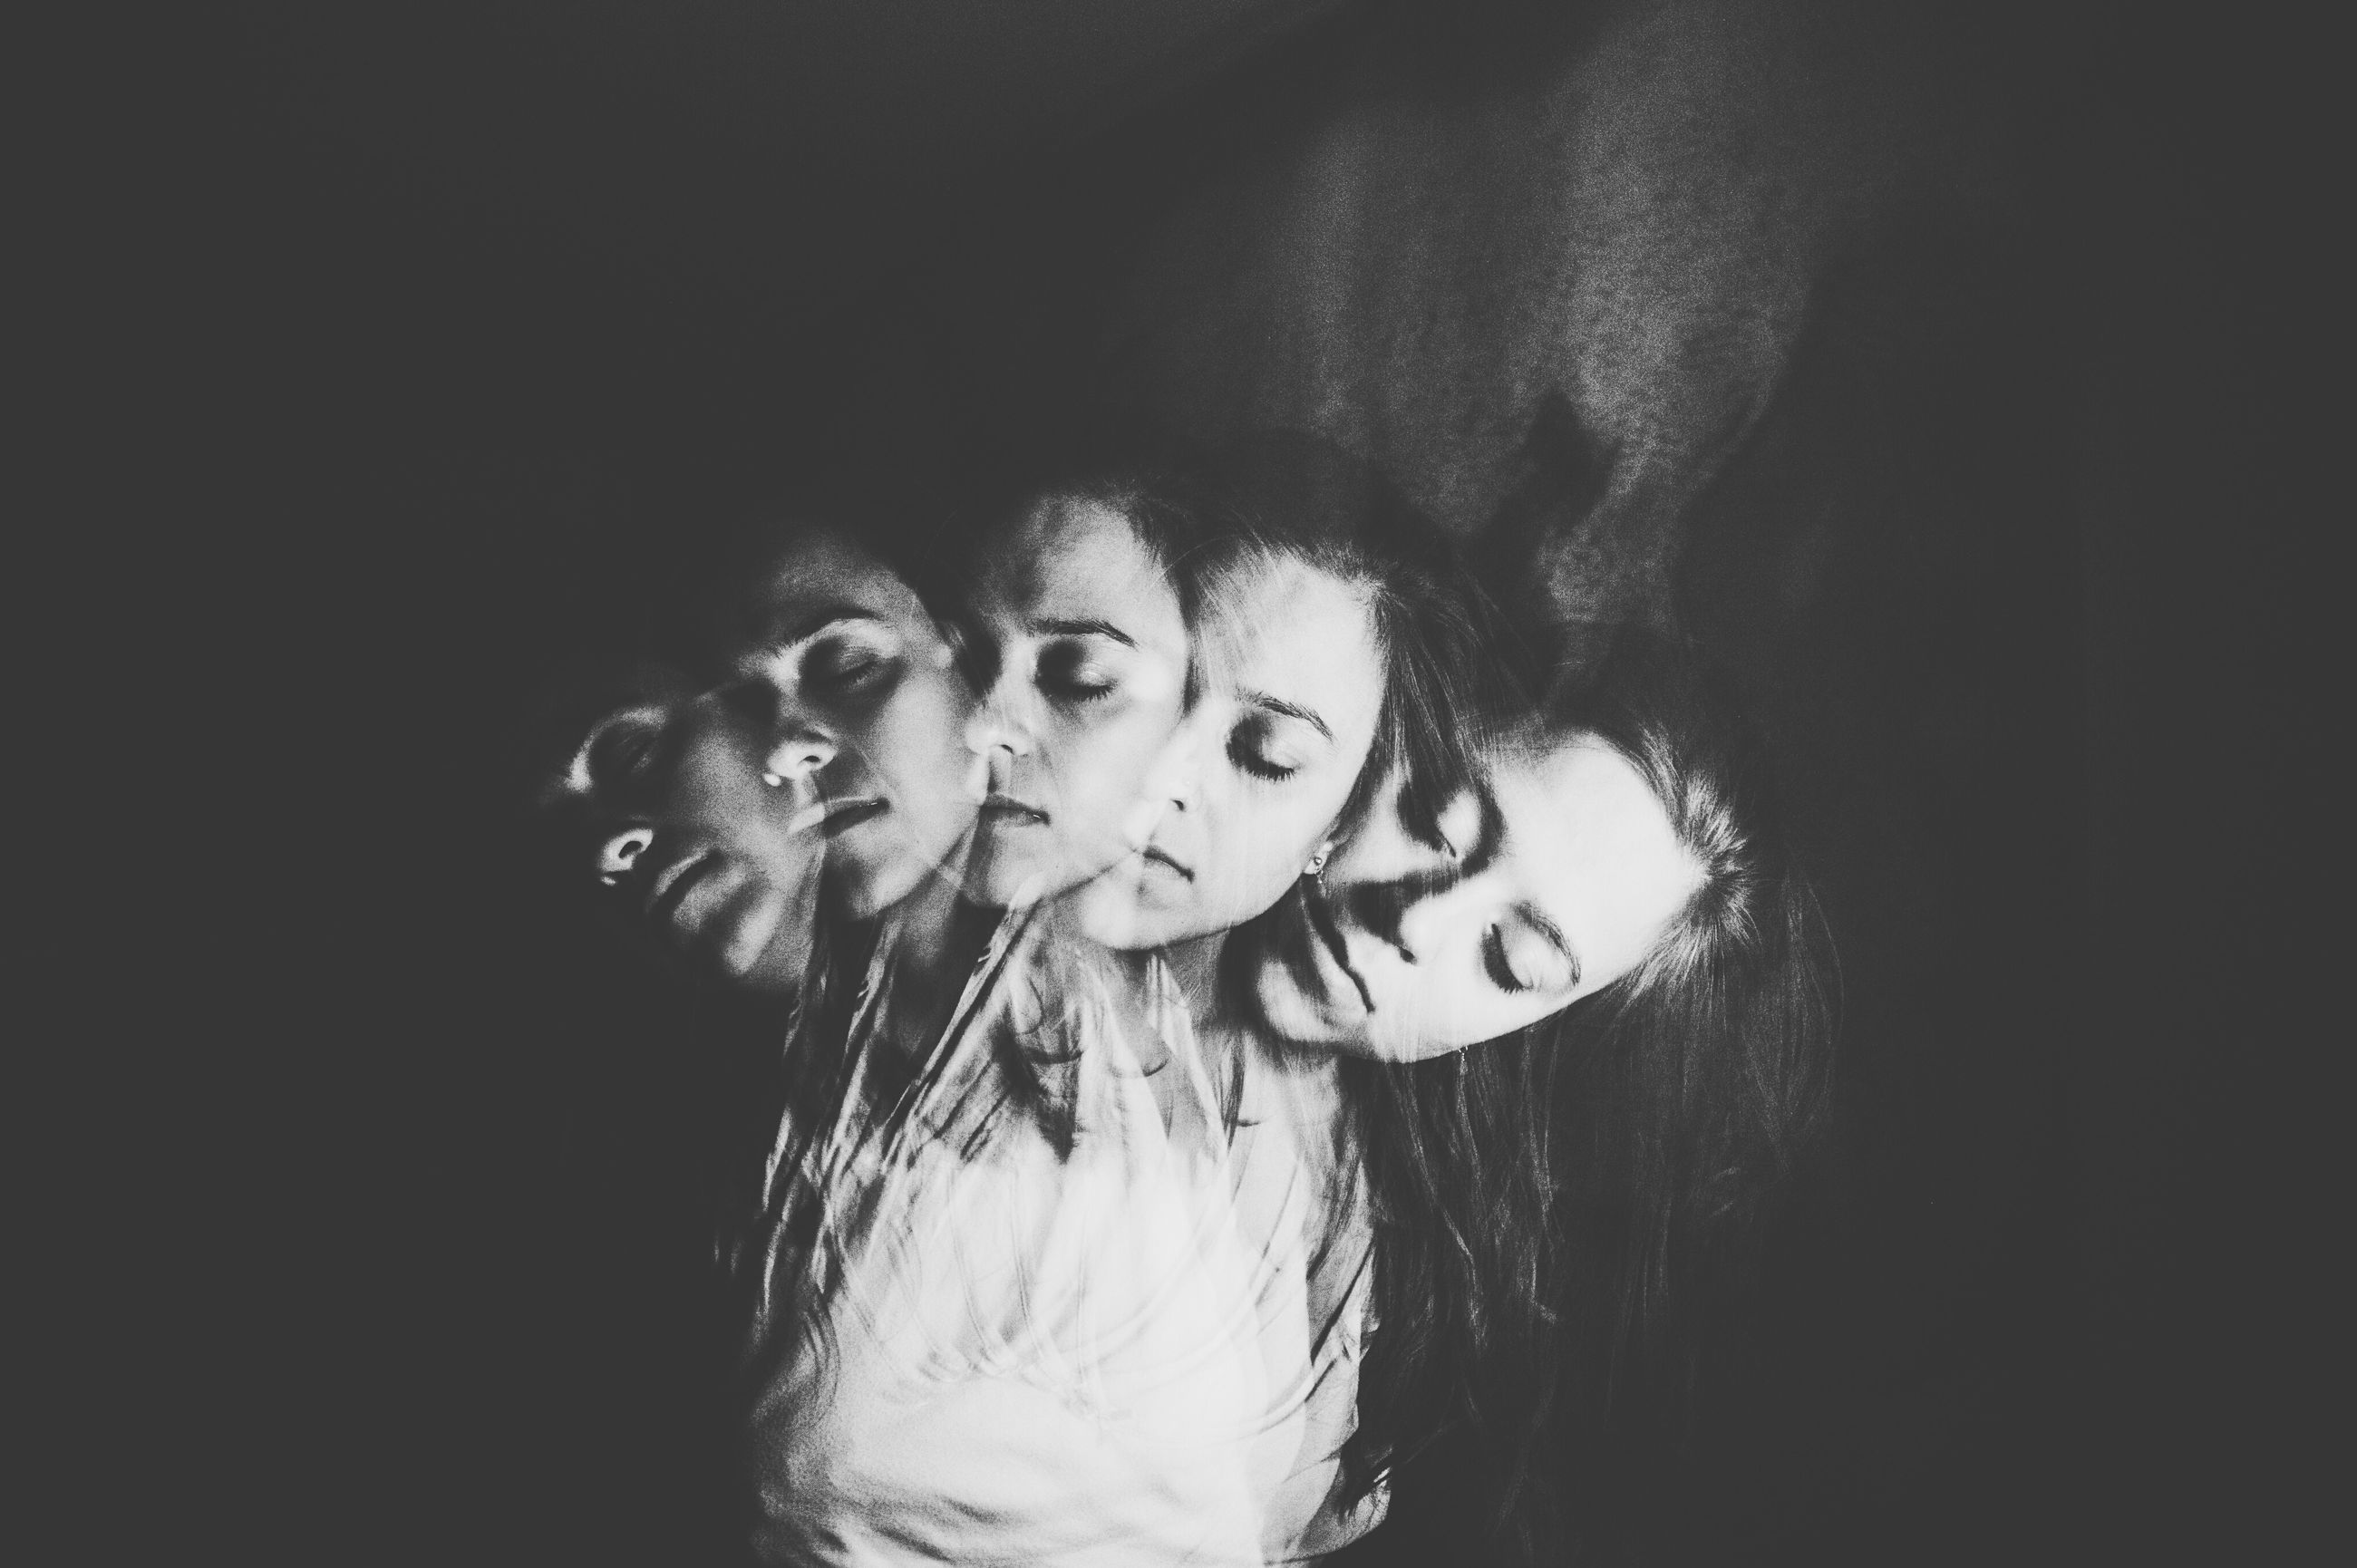 real people, happiness, studio shot, night, leisure activity, lifestyles, indoors, togetherness, smiling, looking at camera, young adult, young women, childhood, standing, bonding, black background, friendship, close-up